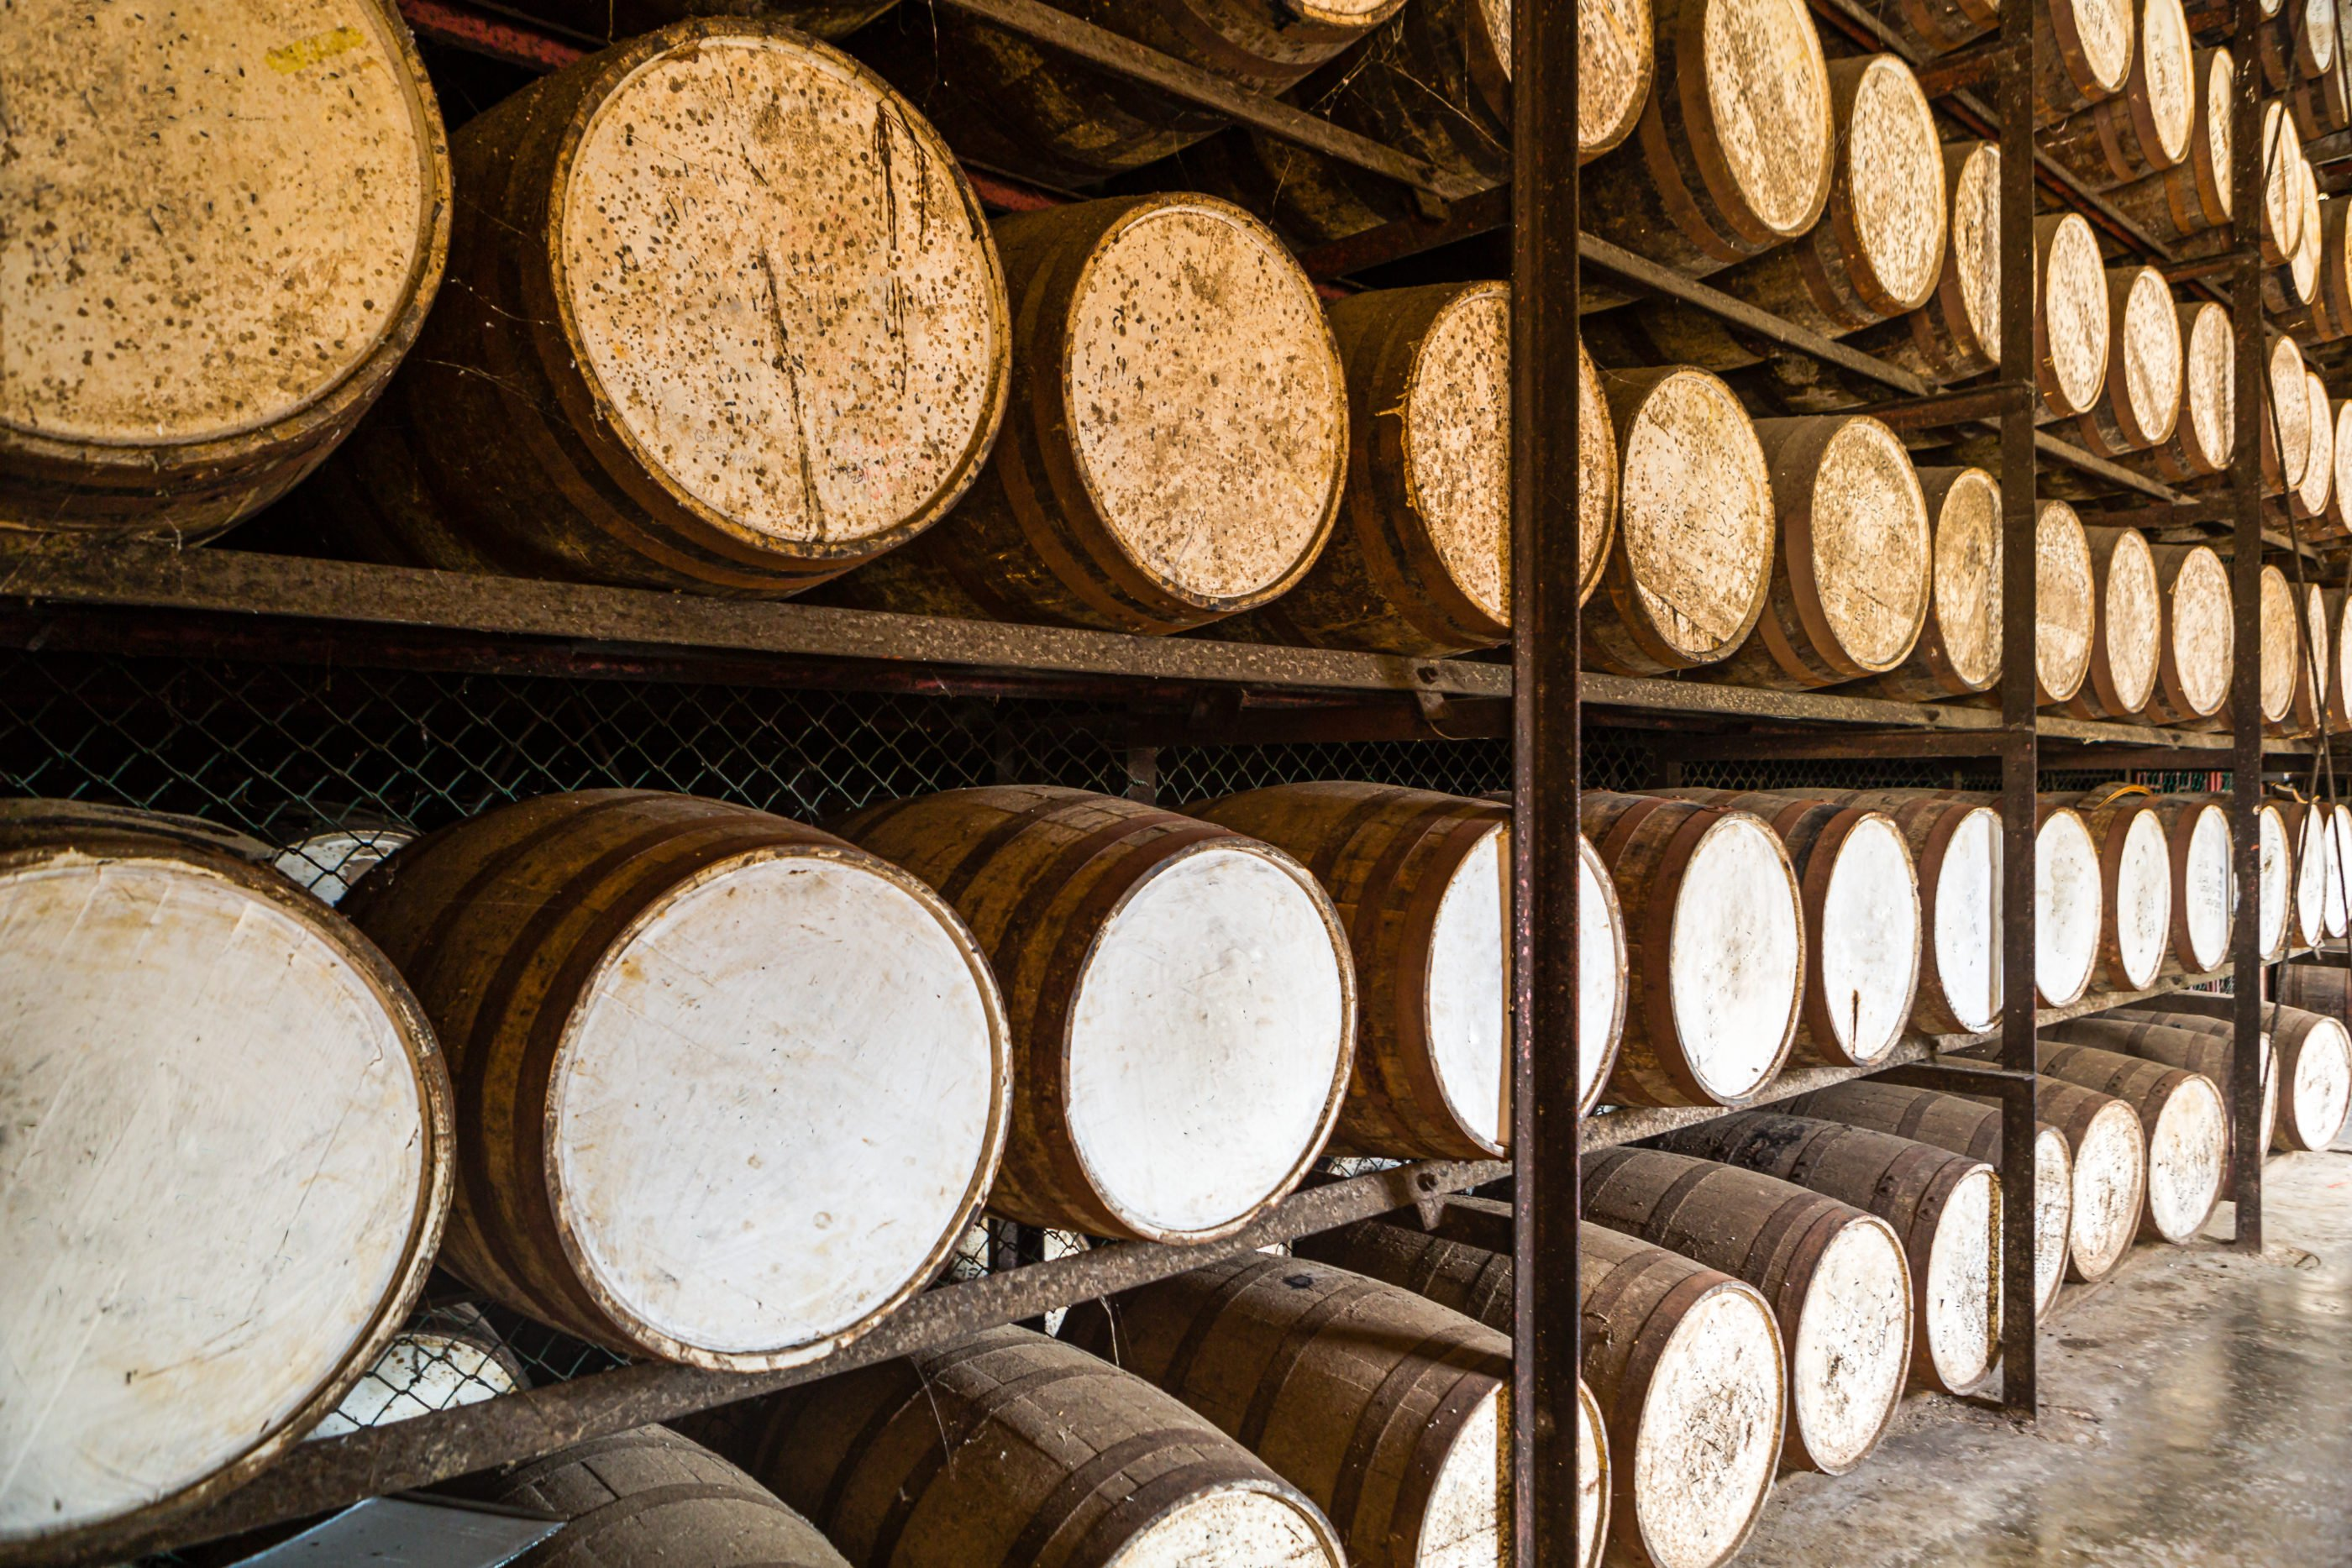 Jamaican rum barrels age on row up on row of shelves.